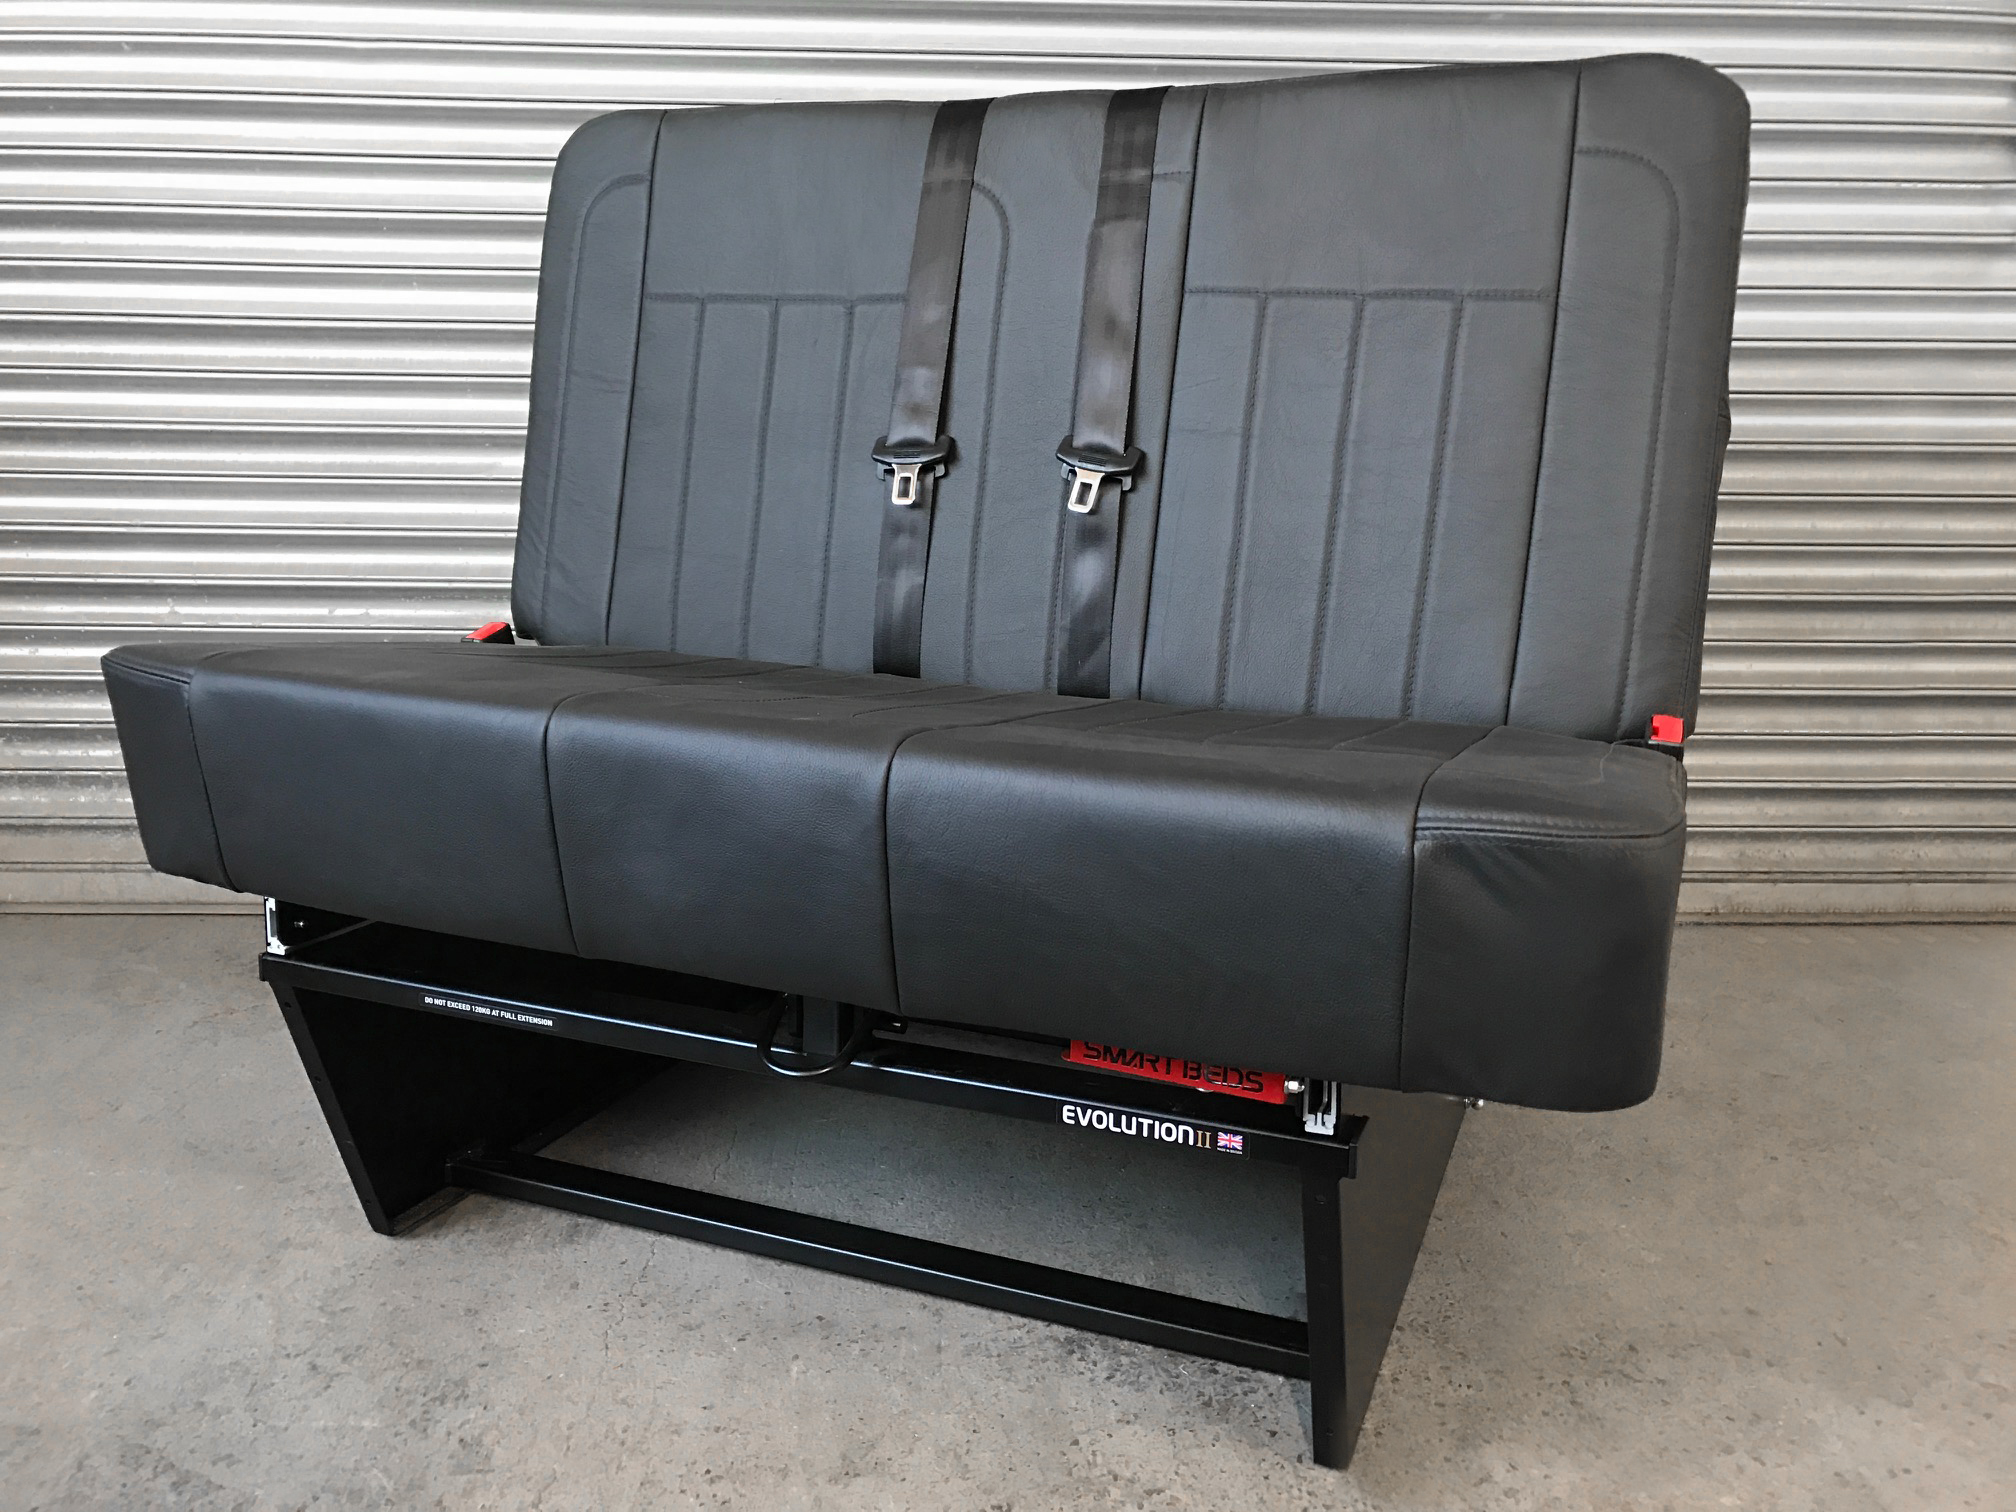 Evolution 2 - 3/4 Bed, M1 Tested from £1110excluding fitting, upholstery , and delivery